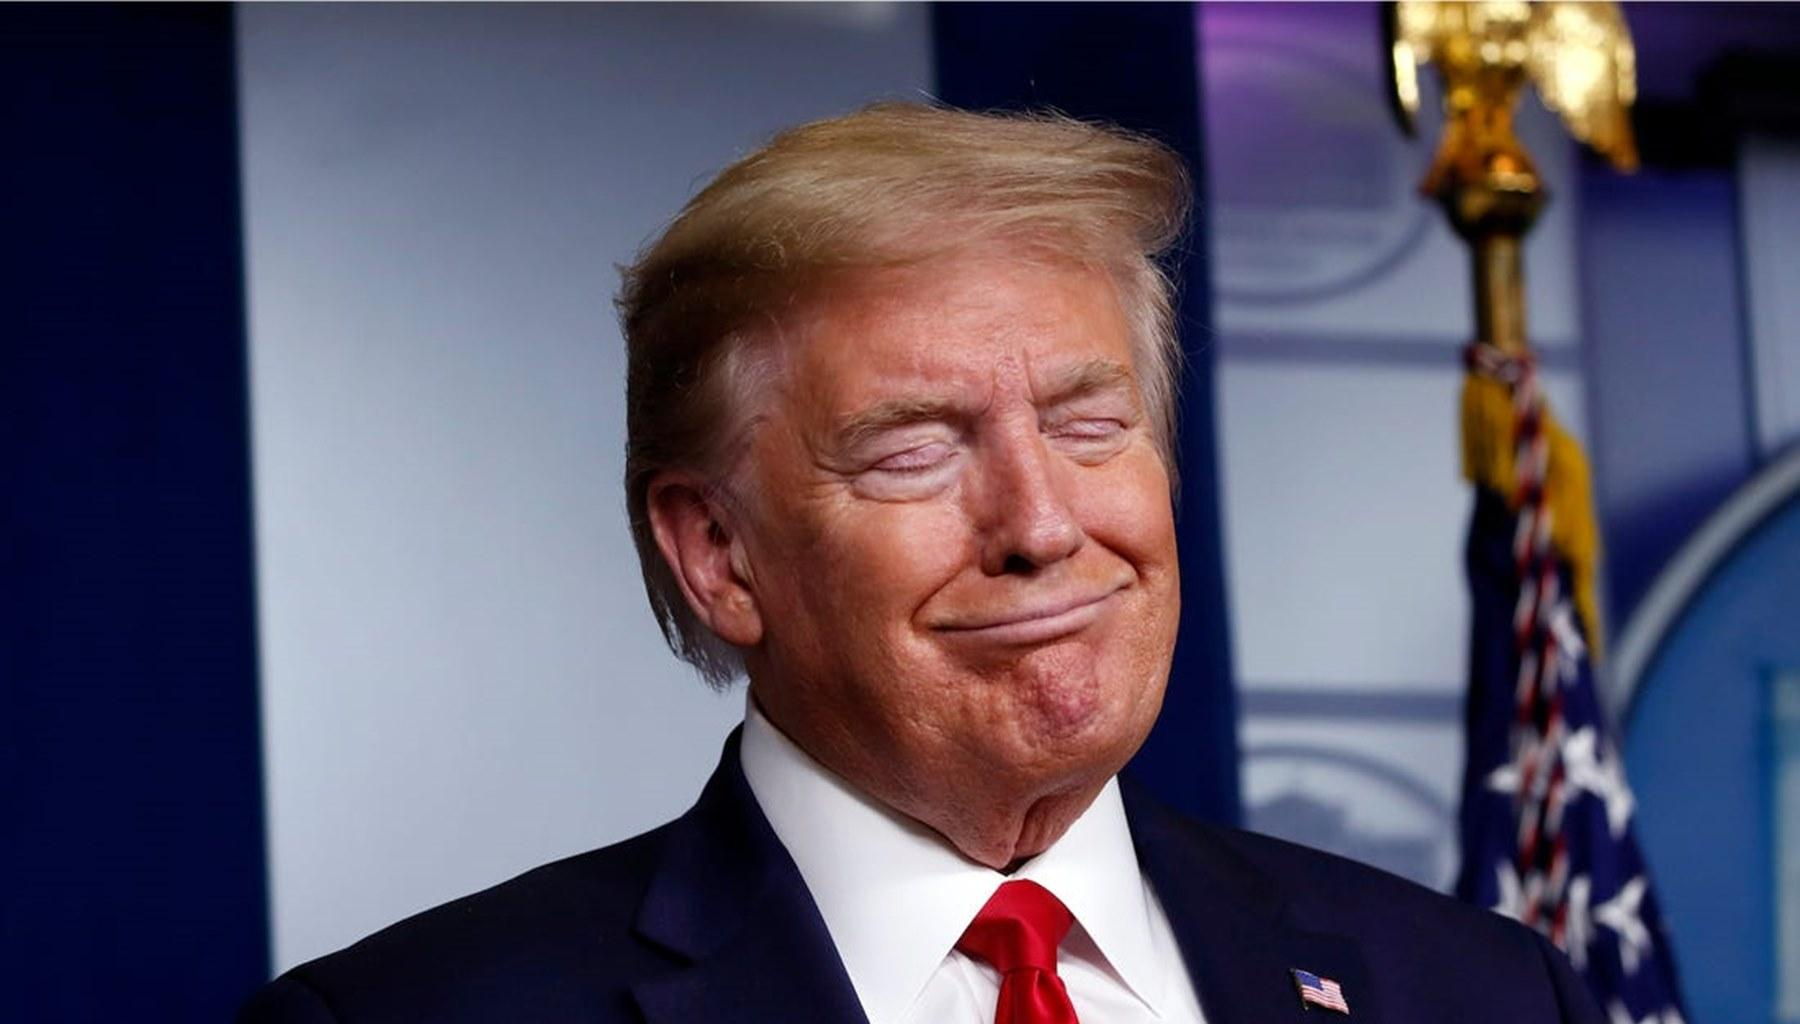 President Donald Trump Leaves Viewers Baffled By Speaking About How God Guided Him To The White House